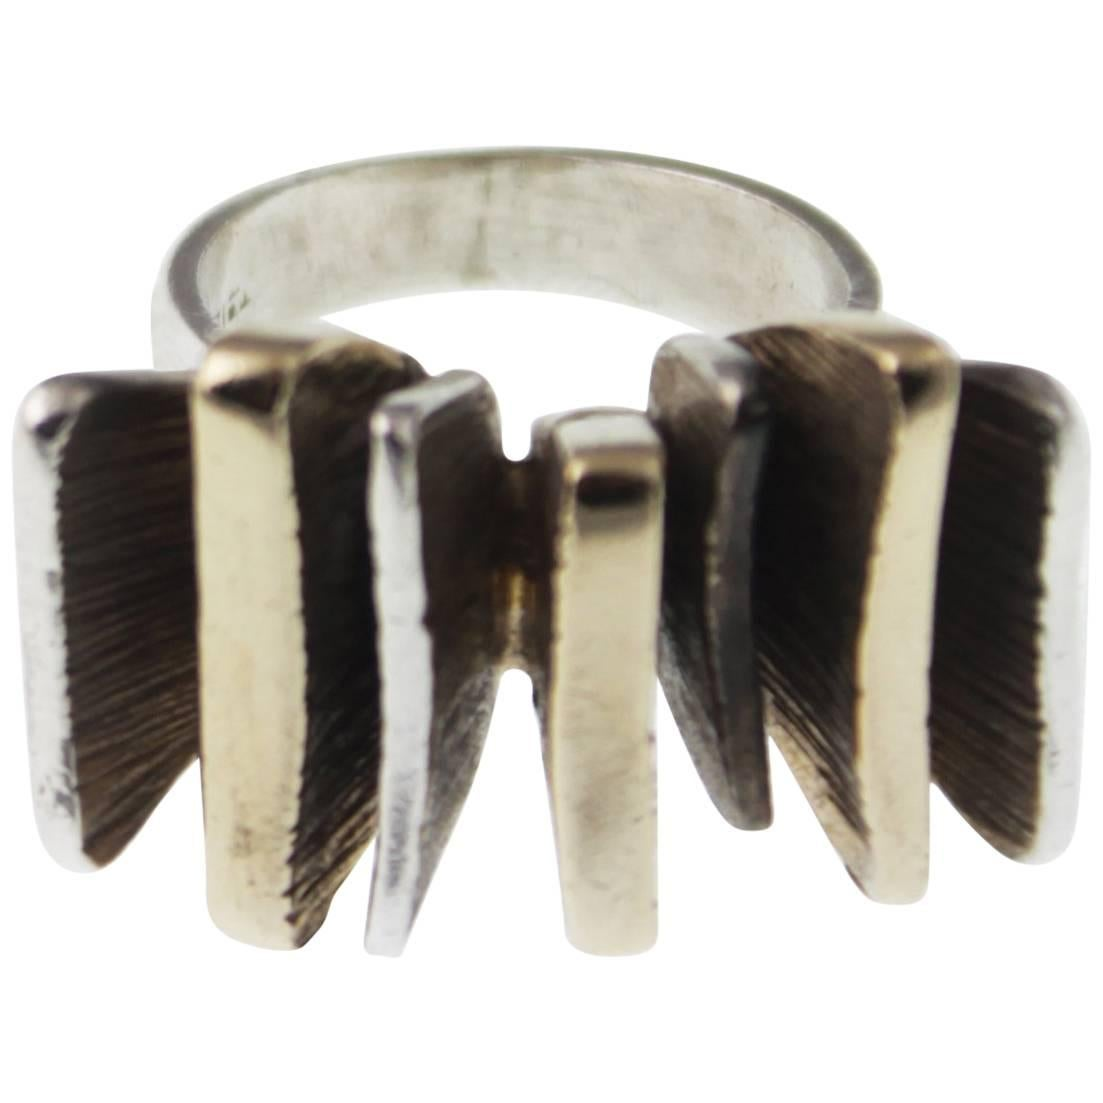 Mid-Century Modern Silver and Gold Ring